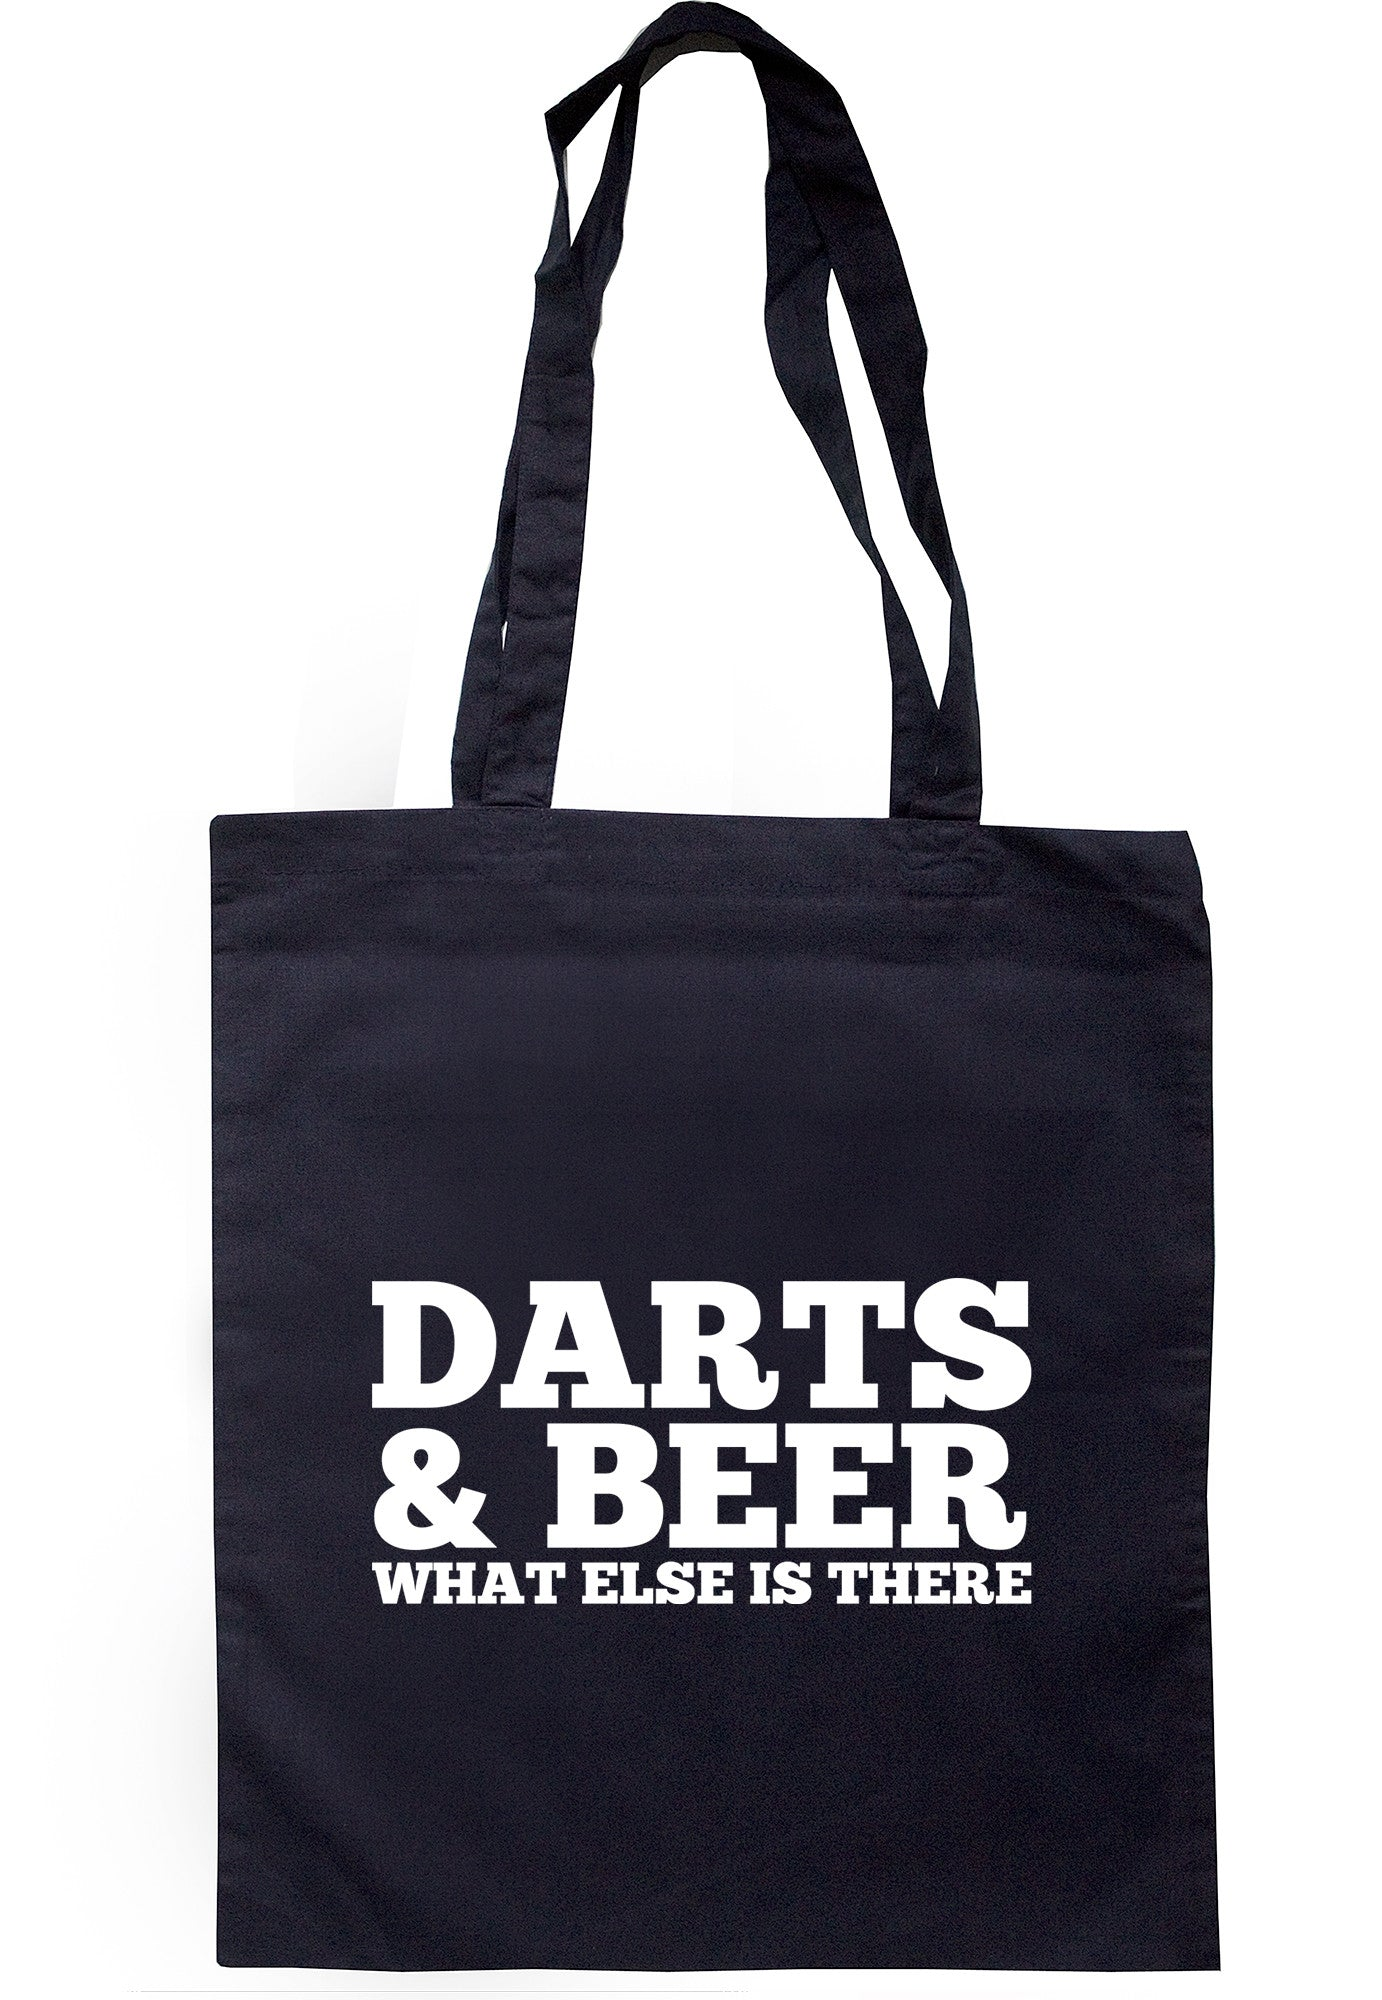 Darts & Beer What Else Is There Tote Bag TB0475 - Illustrated Identity Ltd.